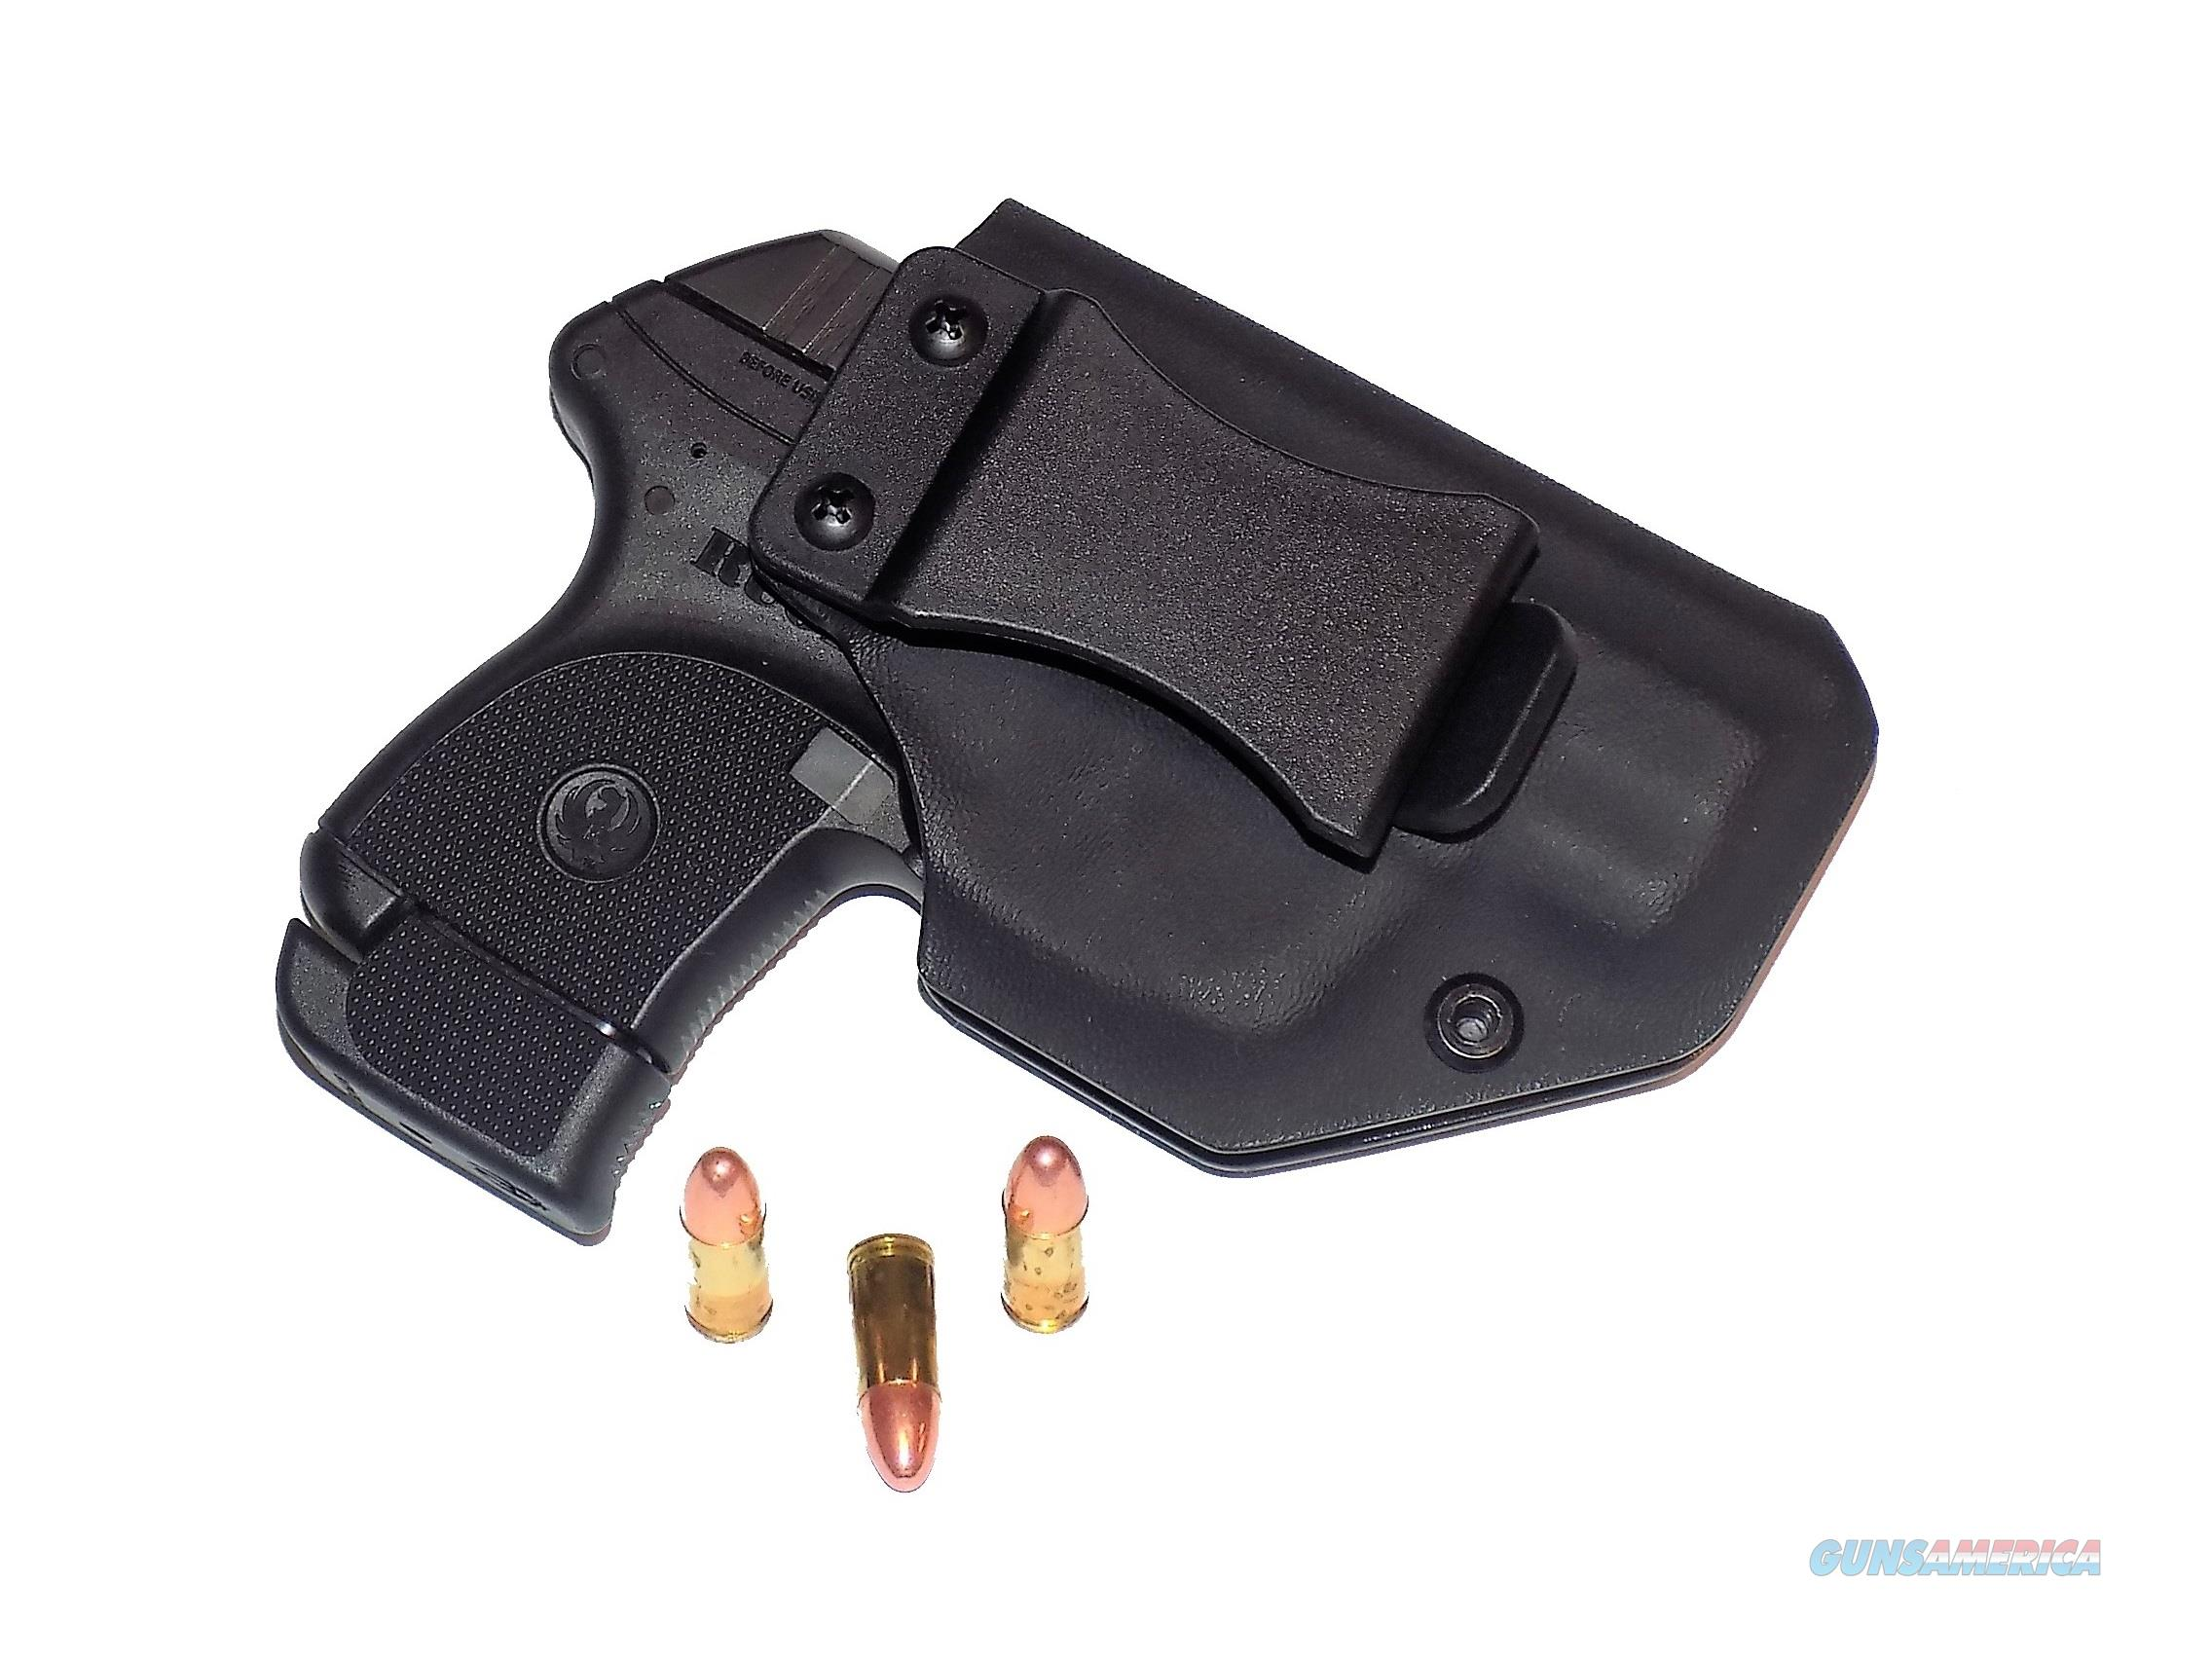 Aggressive Concealment LCPIIIWBLPBK-RH IWB Kydex Holster Ruger LCP II  Non-Guns > Holsters and Gunleather > Concealed Carry